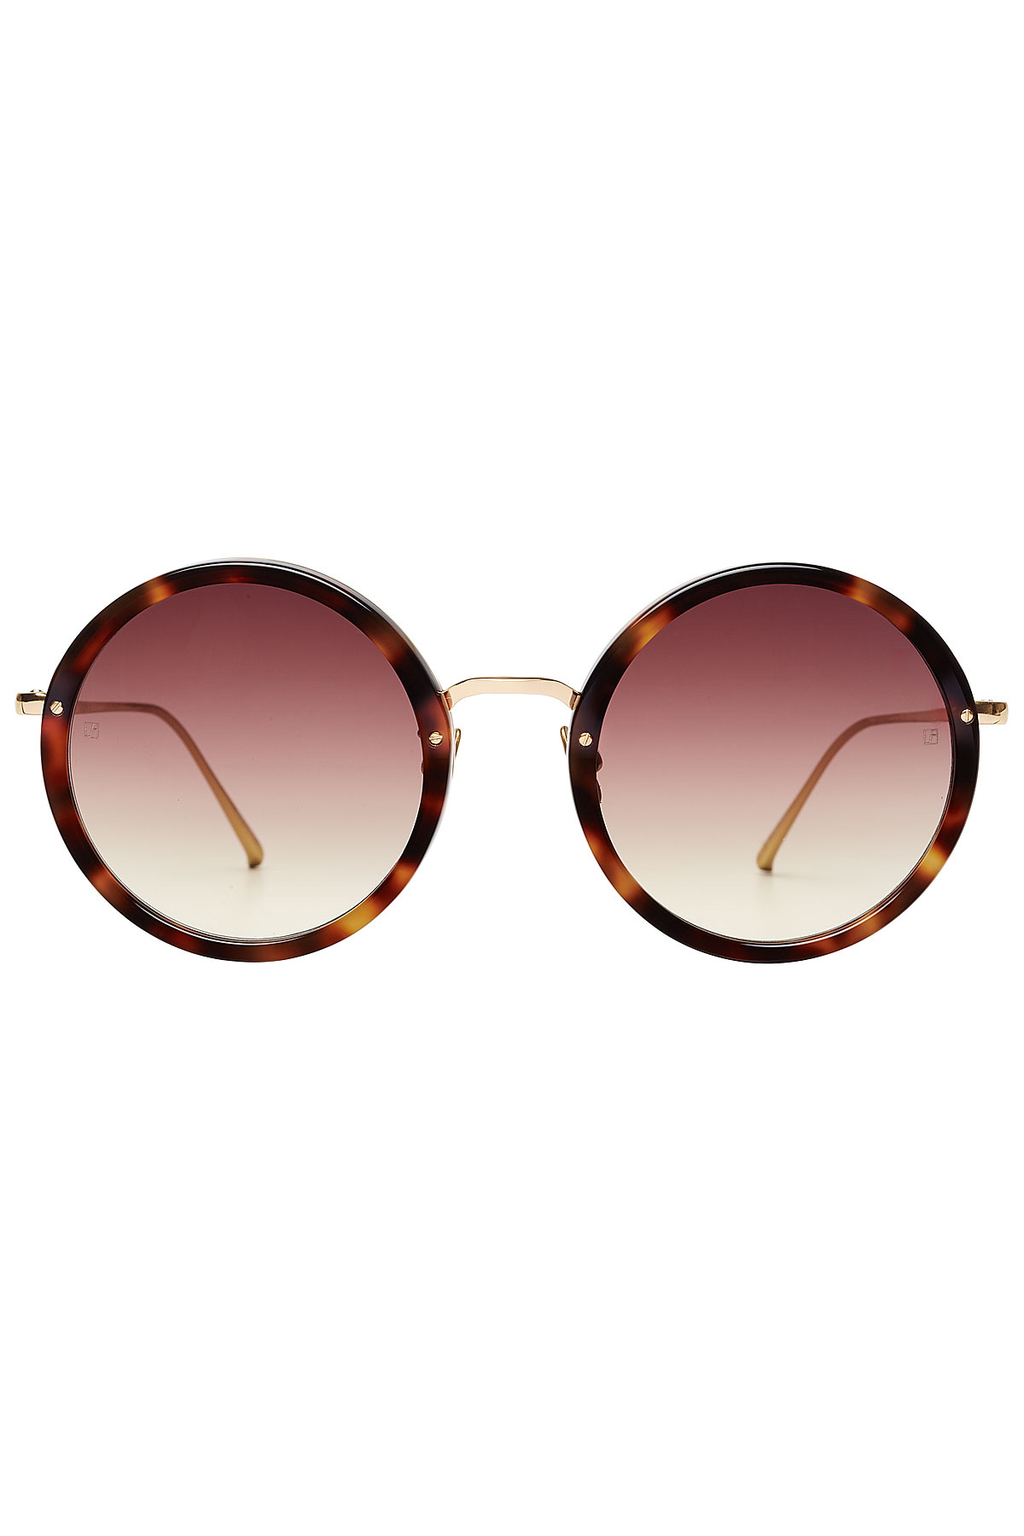 Gold Plated Round Sunglasses Gold - predominant colour: gold; occasions: casual, holiday; style: round; size: standard; material: plastic/rubber; pattern: tortoiseshell; finish: plain; season: s/s 2016; wardrobe: basic